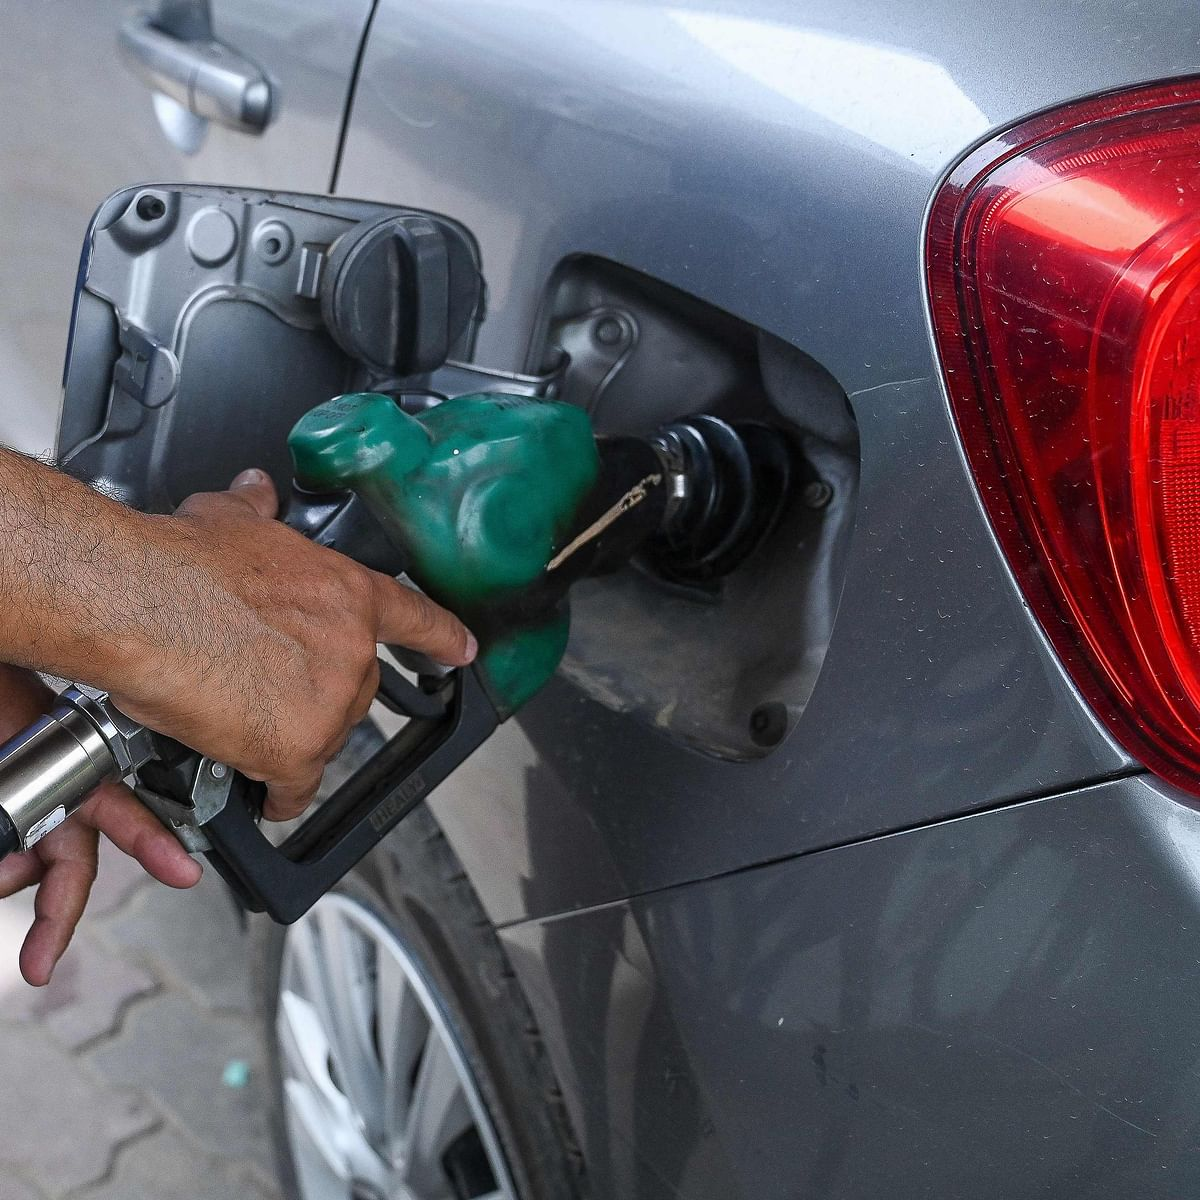 Fuel prices hiked after a day's gap; petrol rate nears Rs 104-mark in Mumbai